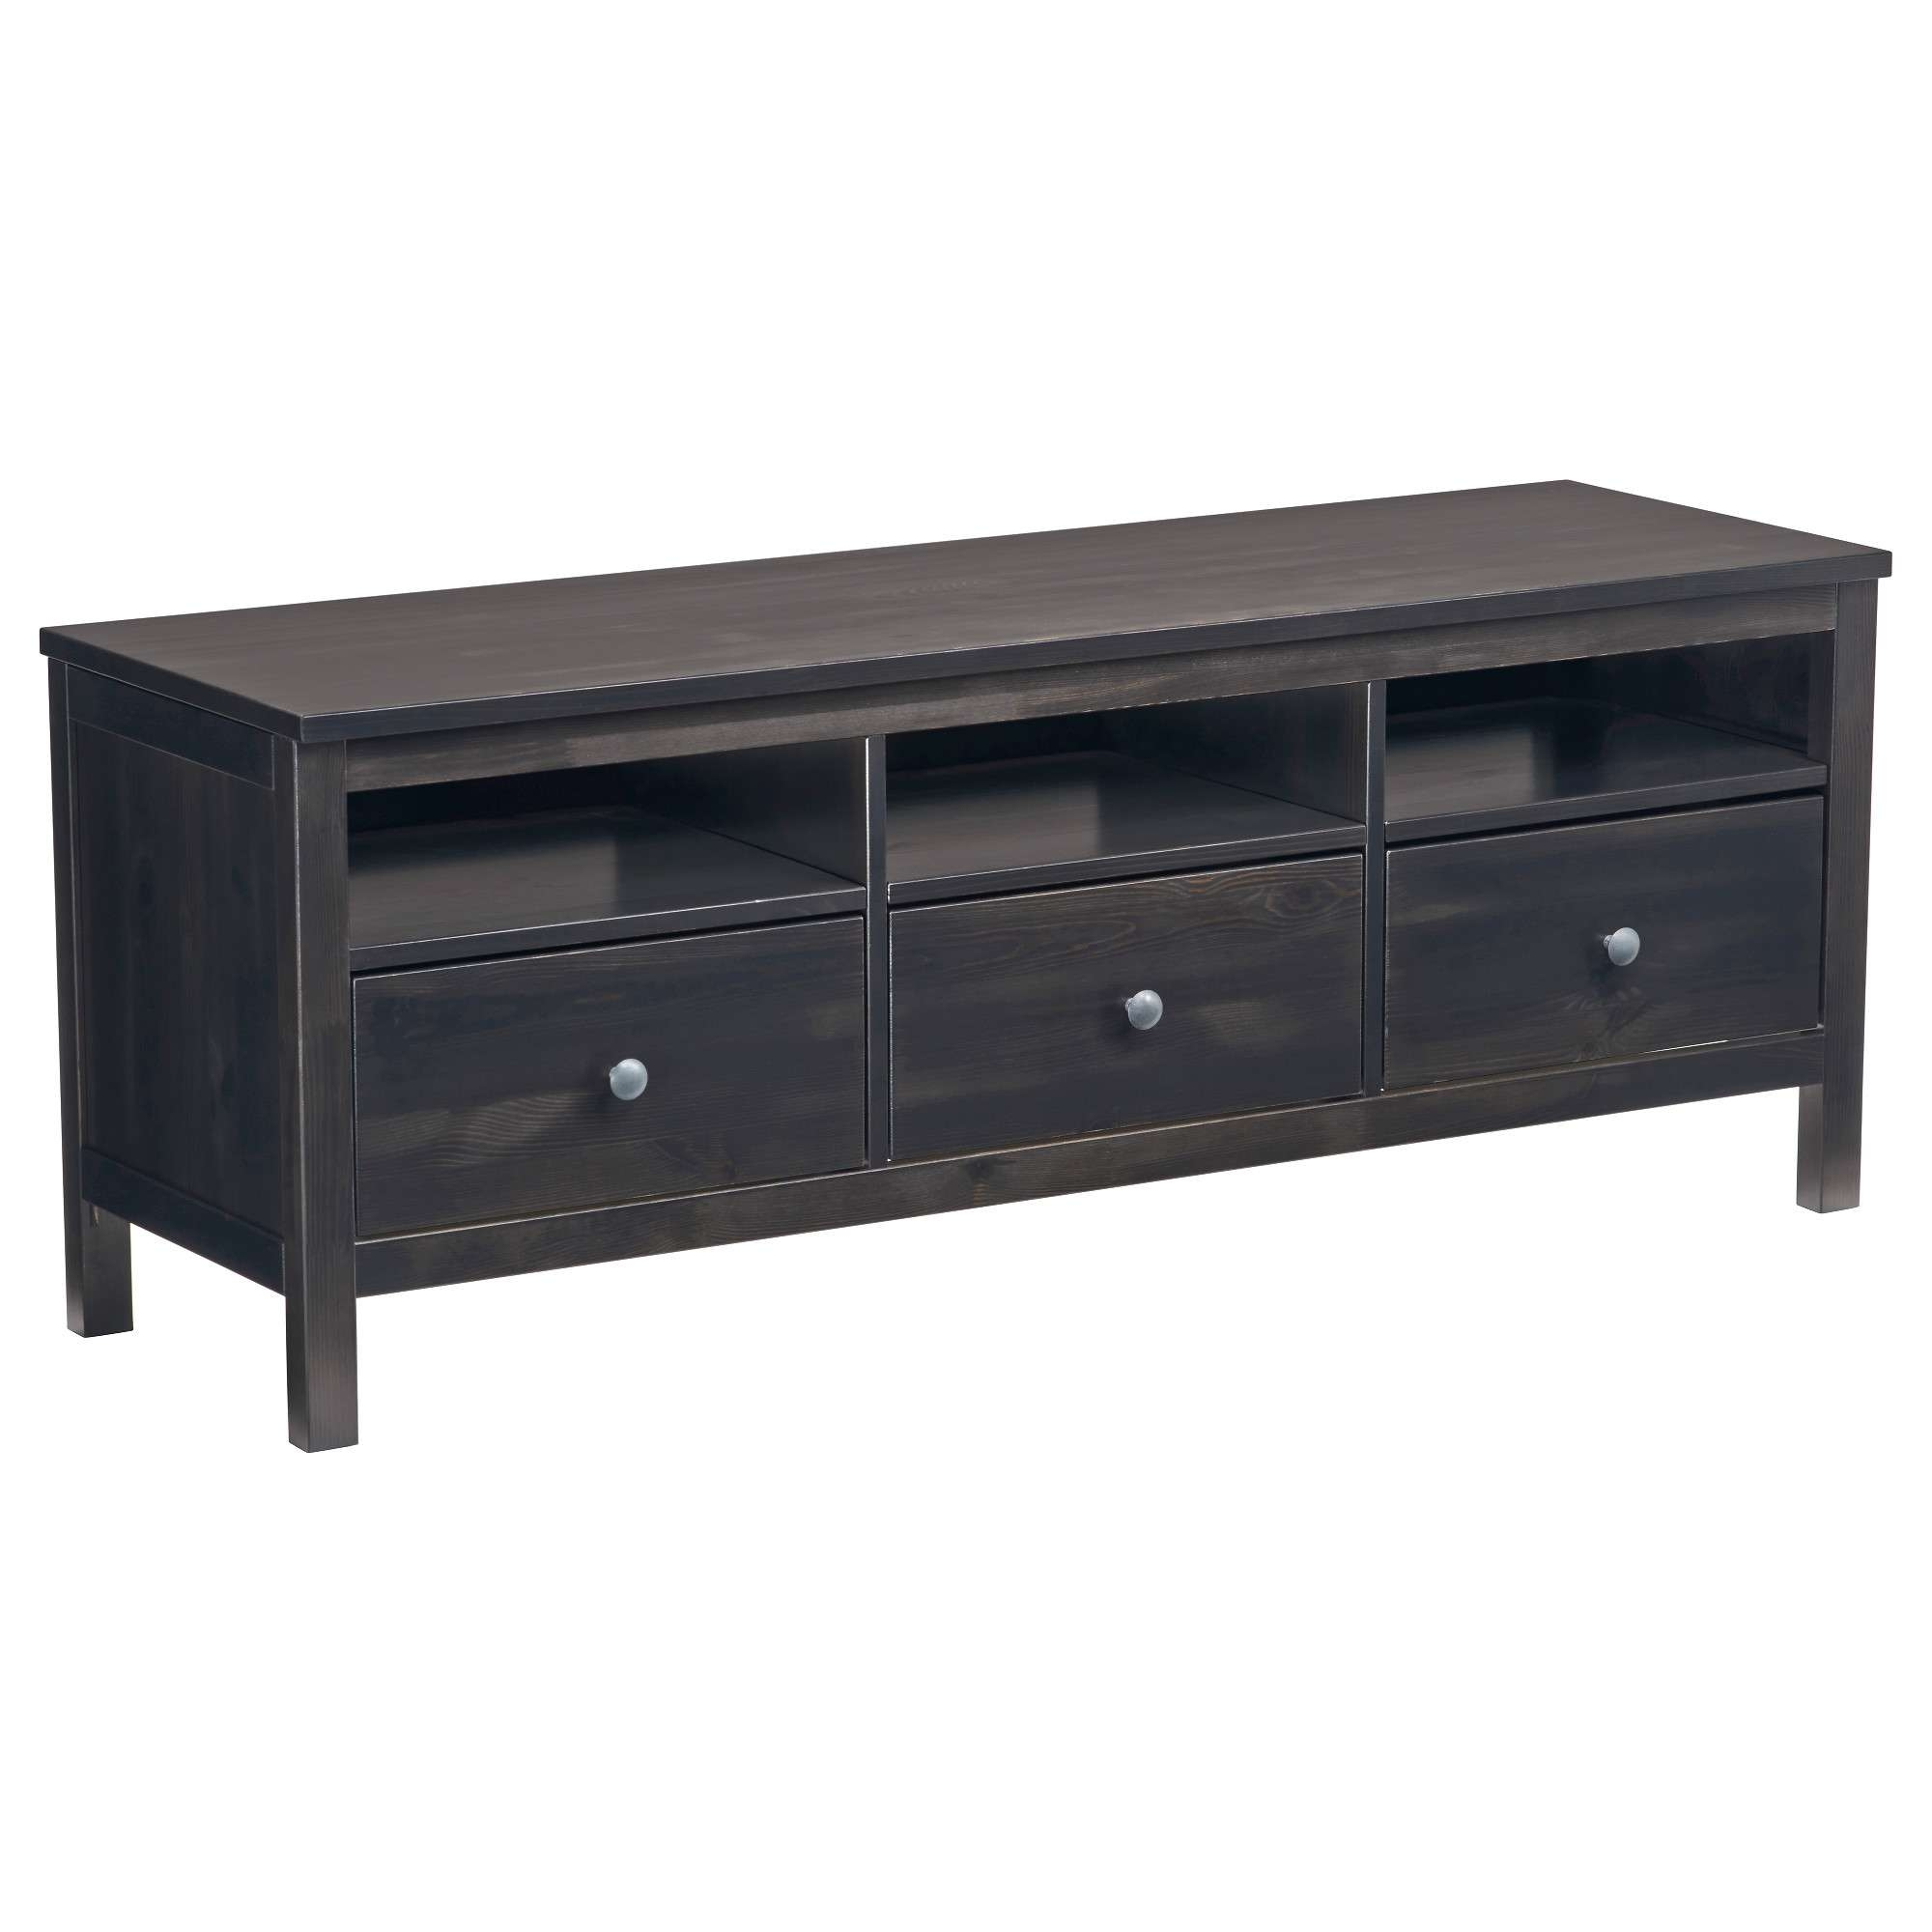 Tv Stands & Entertainment Centers – Ikea With Regard To Low Long Tv Stands (View 11 of 15)